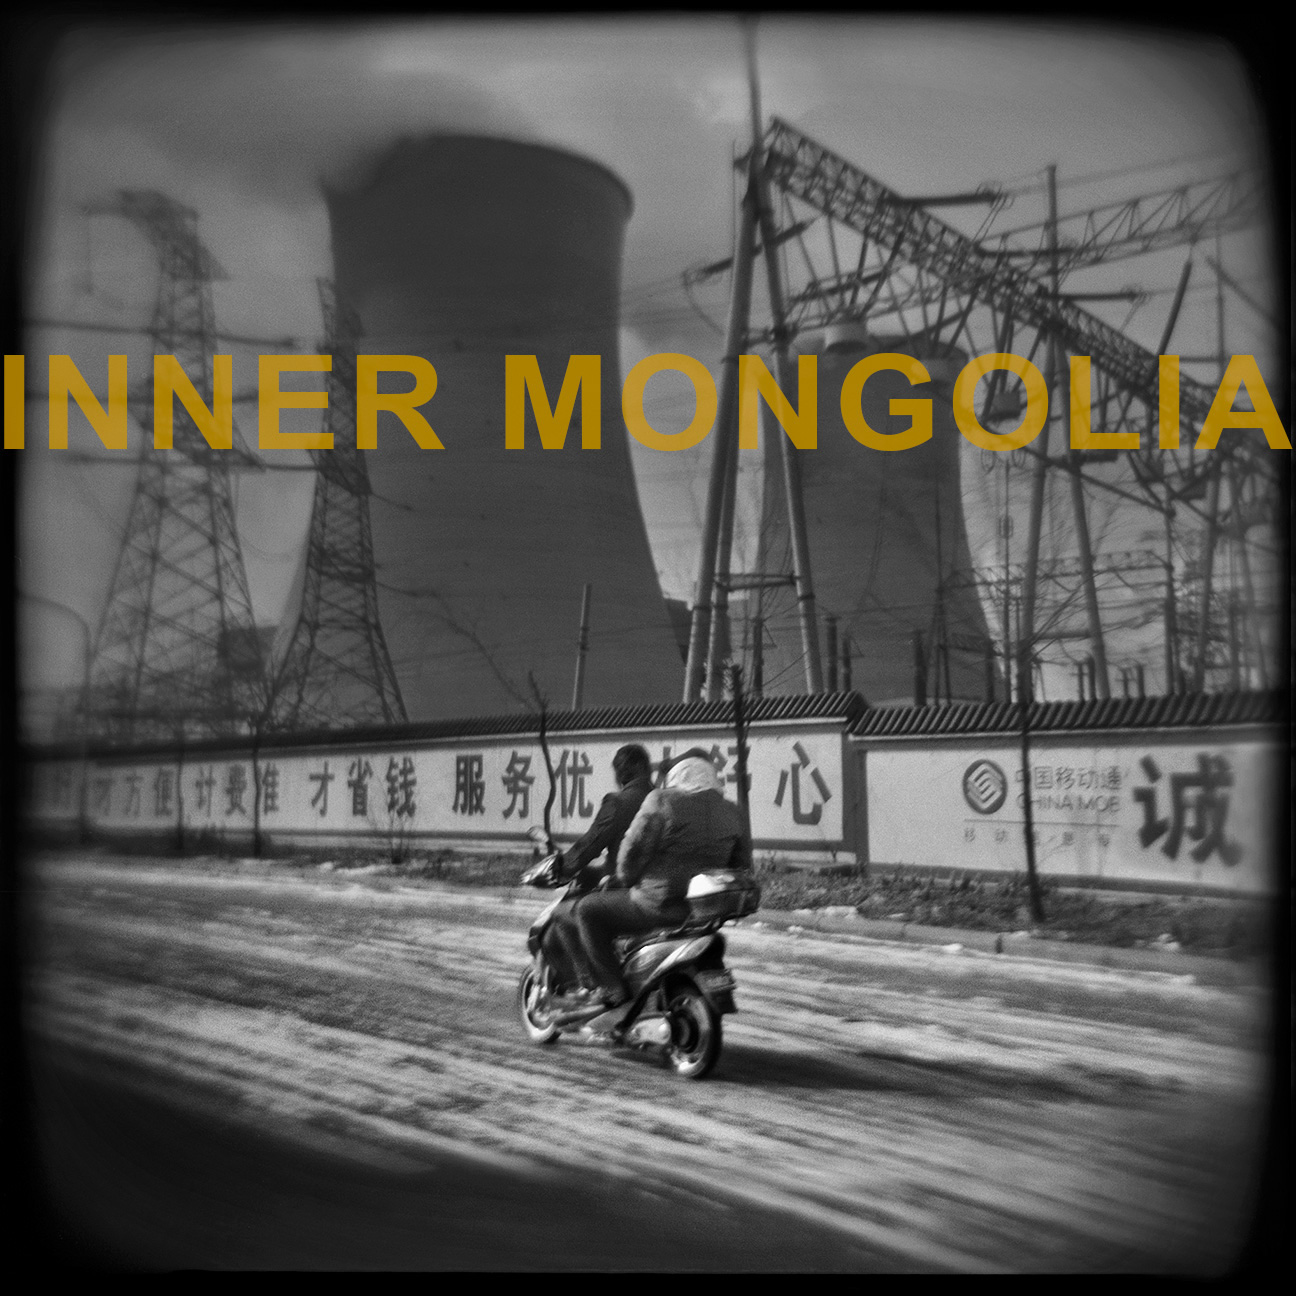 InneMongolia-TITLE-Website-June2017-B2